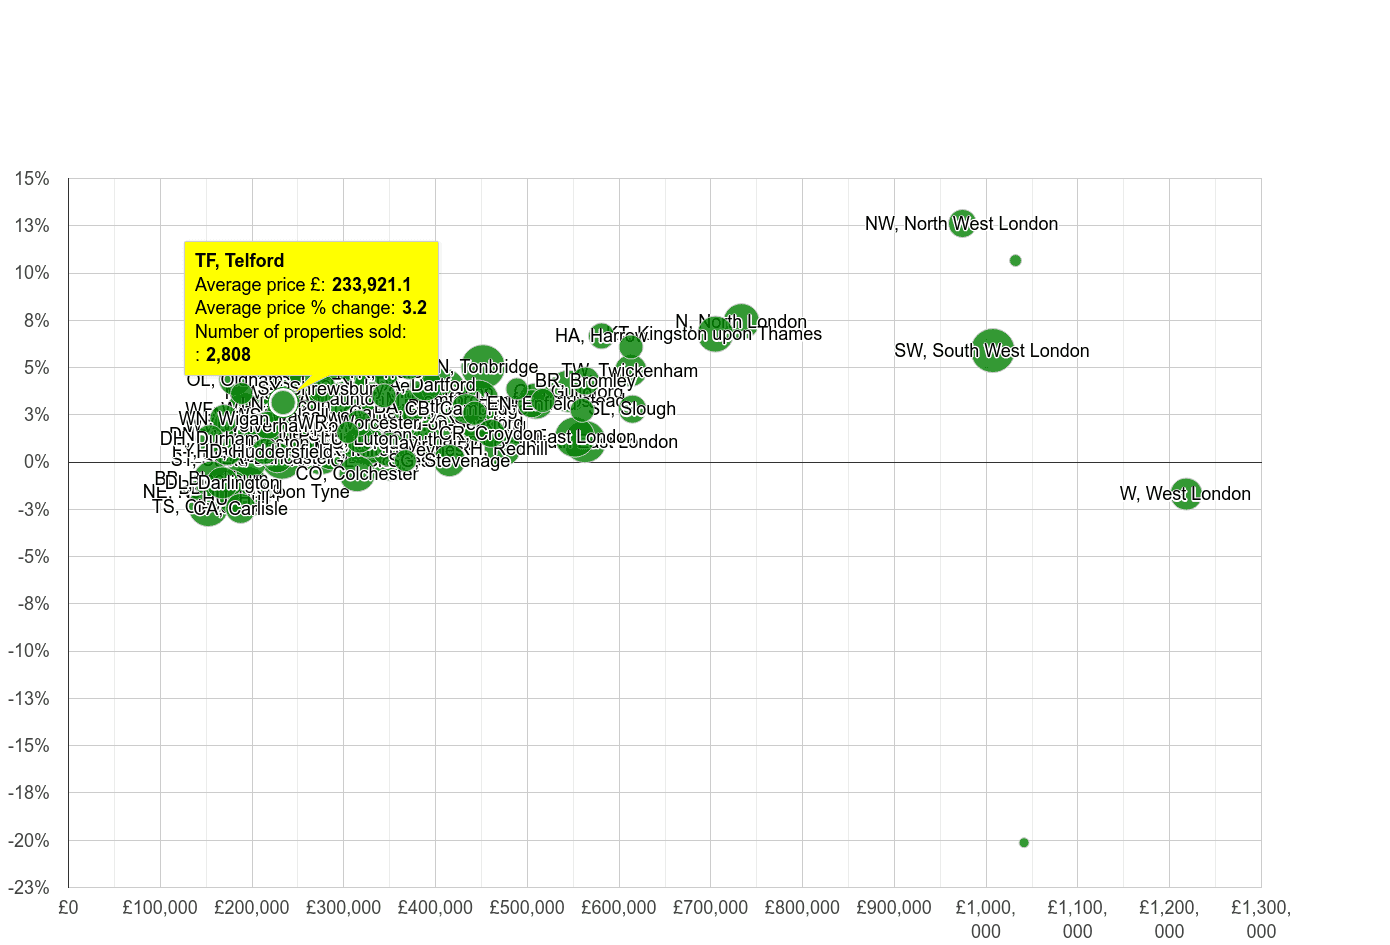 Telford house prices compared to other areas